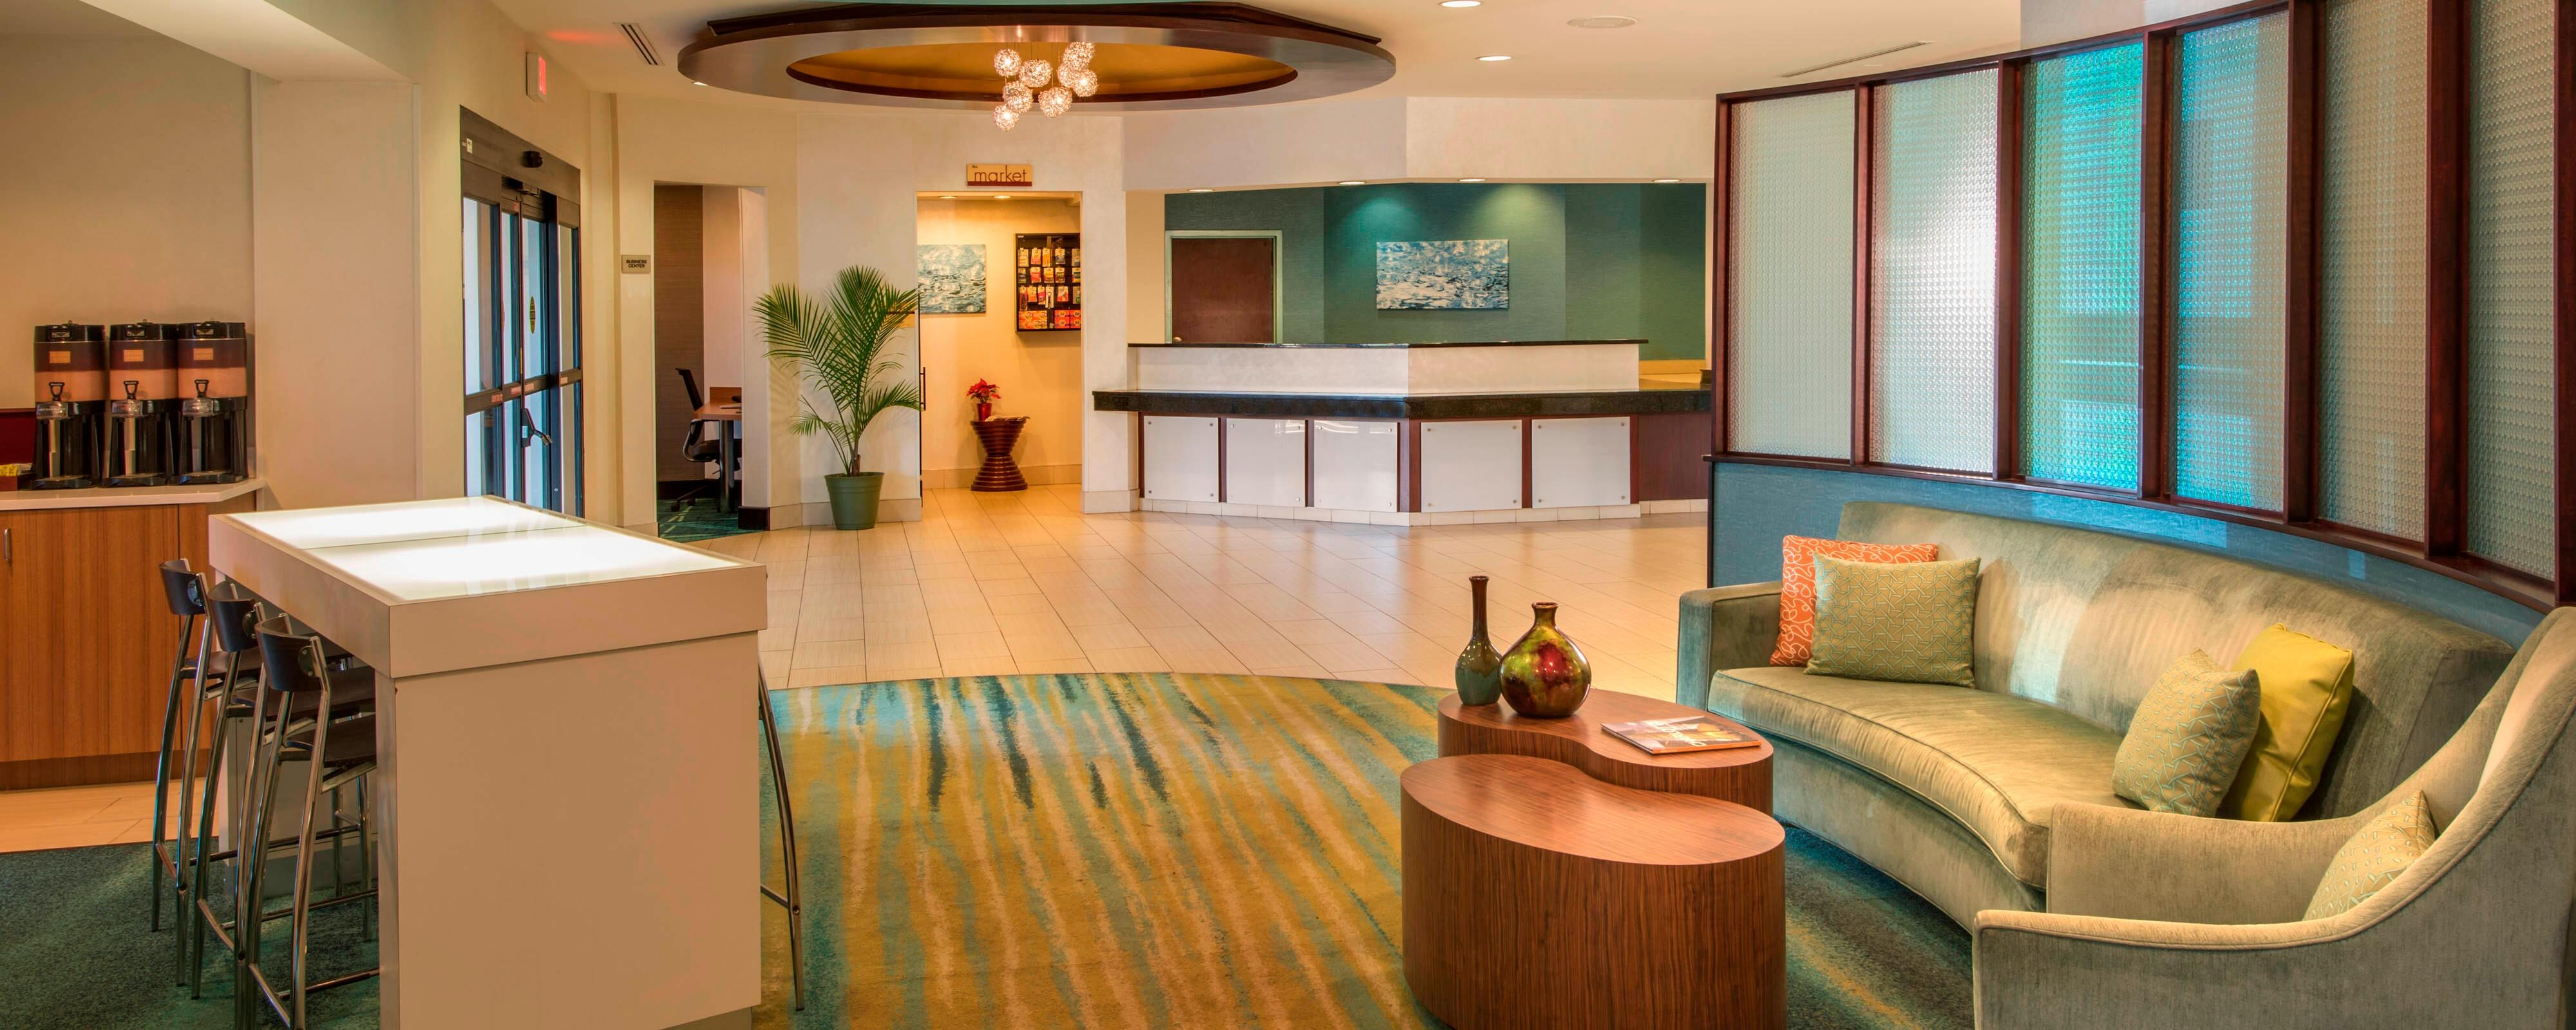 Marriott hotels charlotte north carolina airport